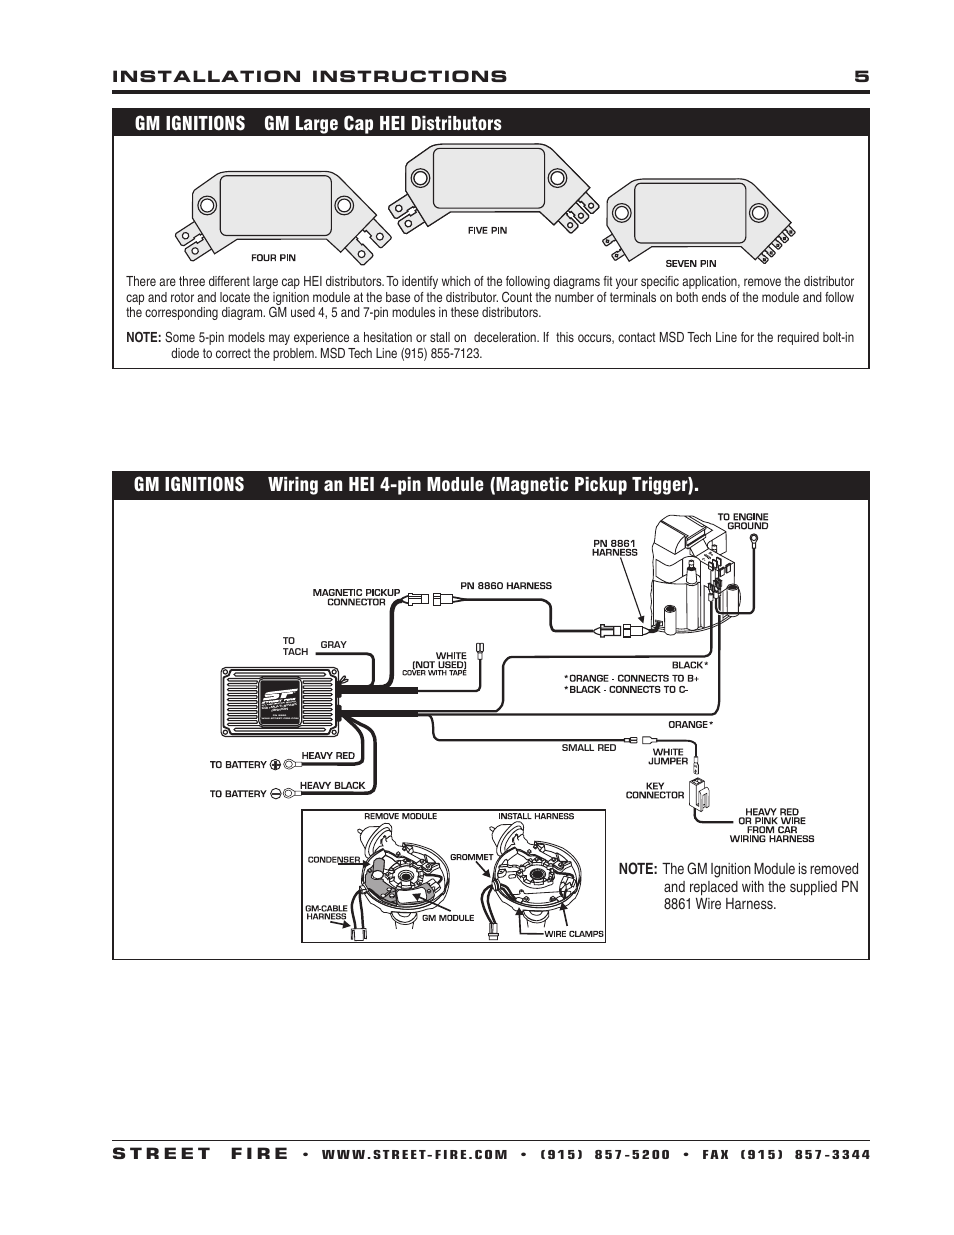 Msd Street Fire Wiring Diagram 280zx Diagrams Box Ford 8630 Free Picture Schematic Ignition Simple A For Jeep L6